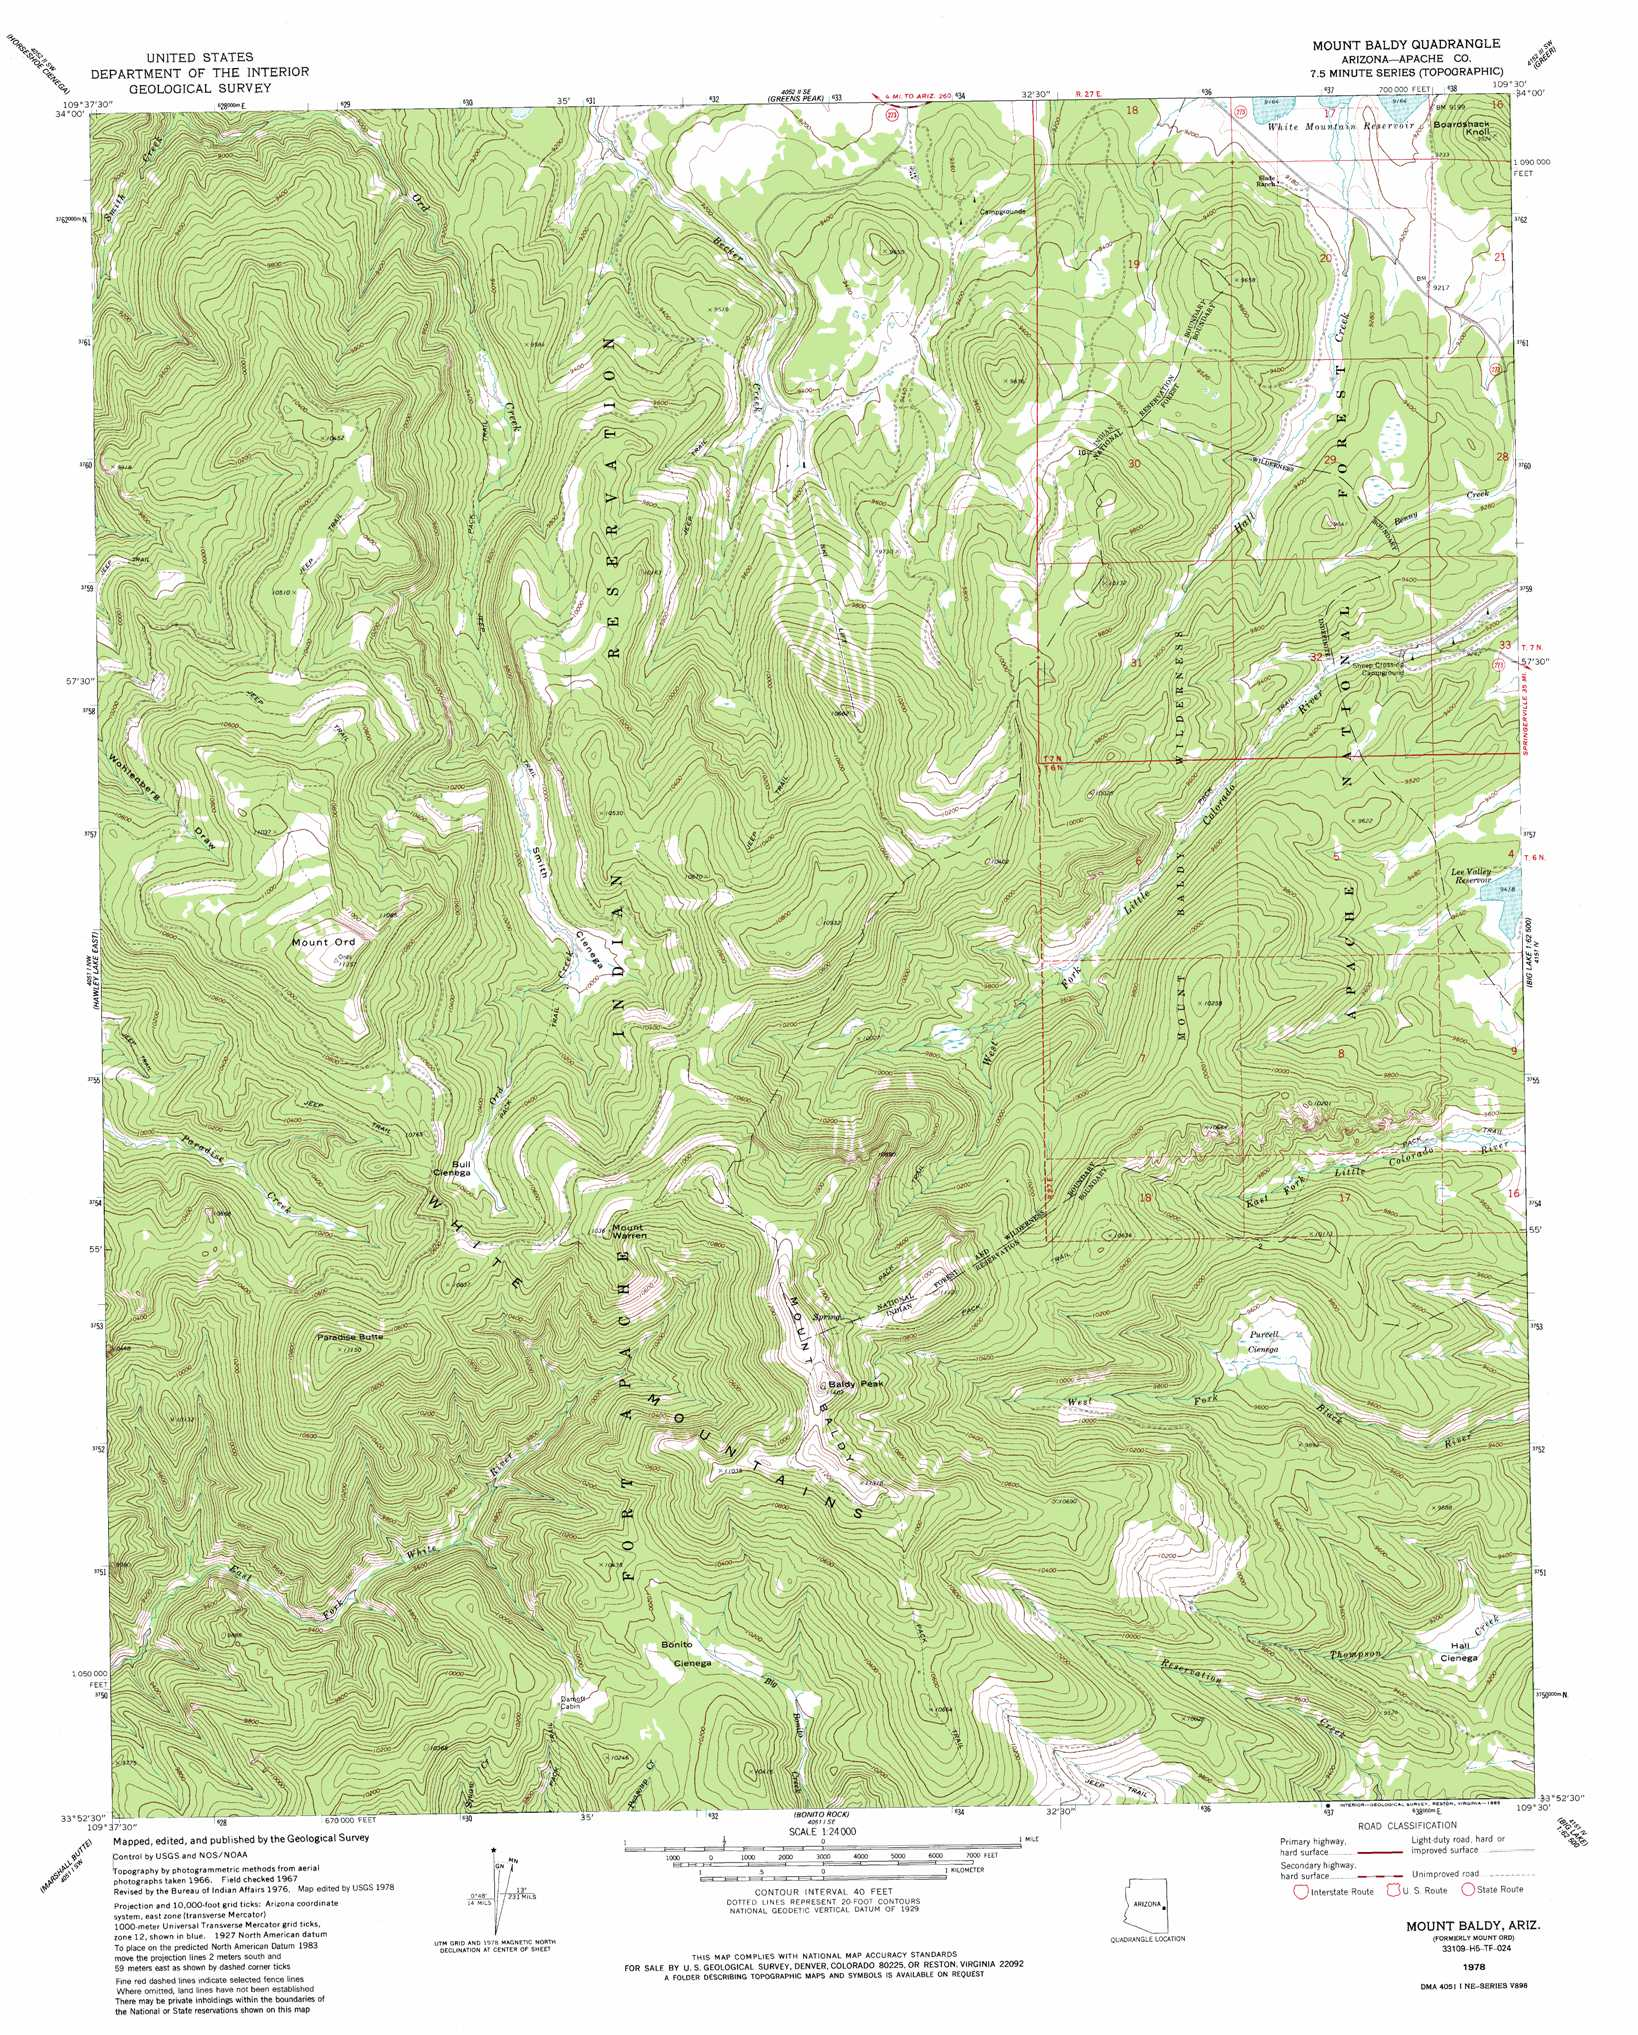 Mount Baldy Topographic Map AZ USGS Topo Quad H - Mt baldy map on map of us